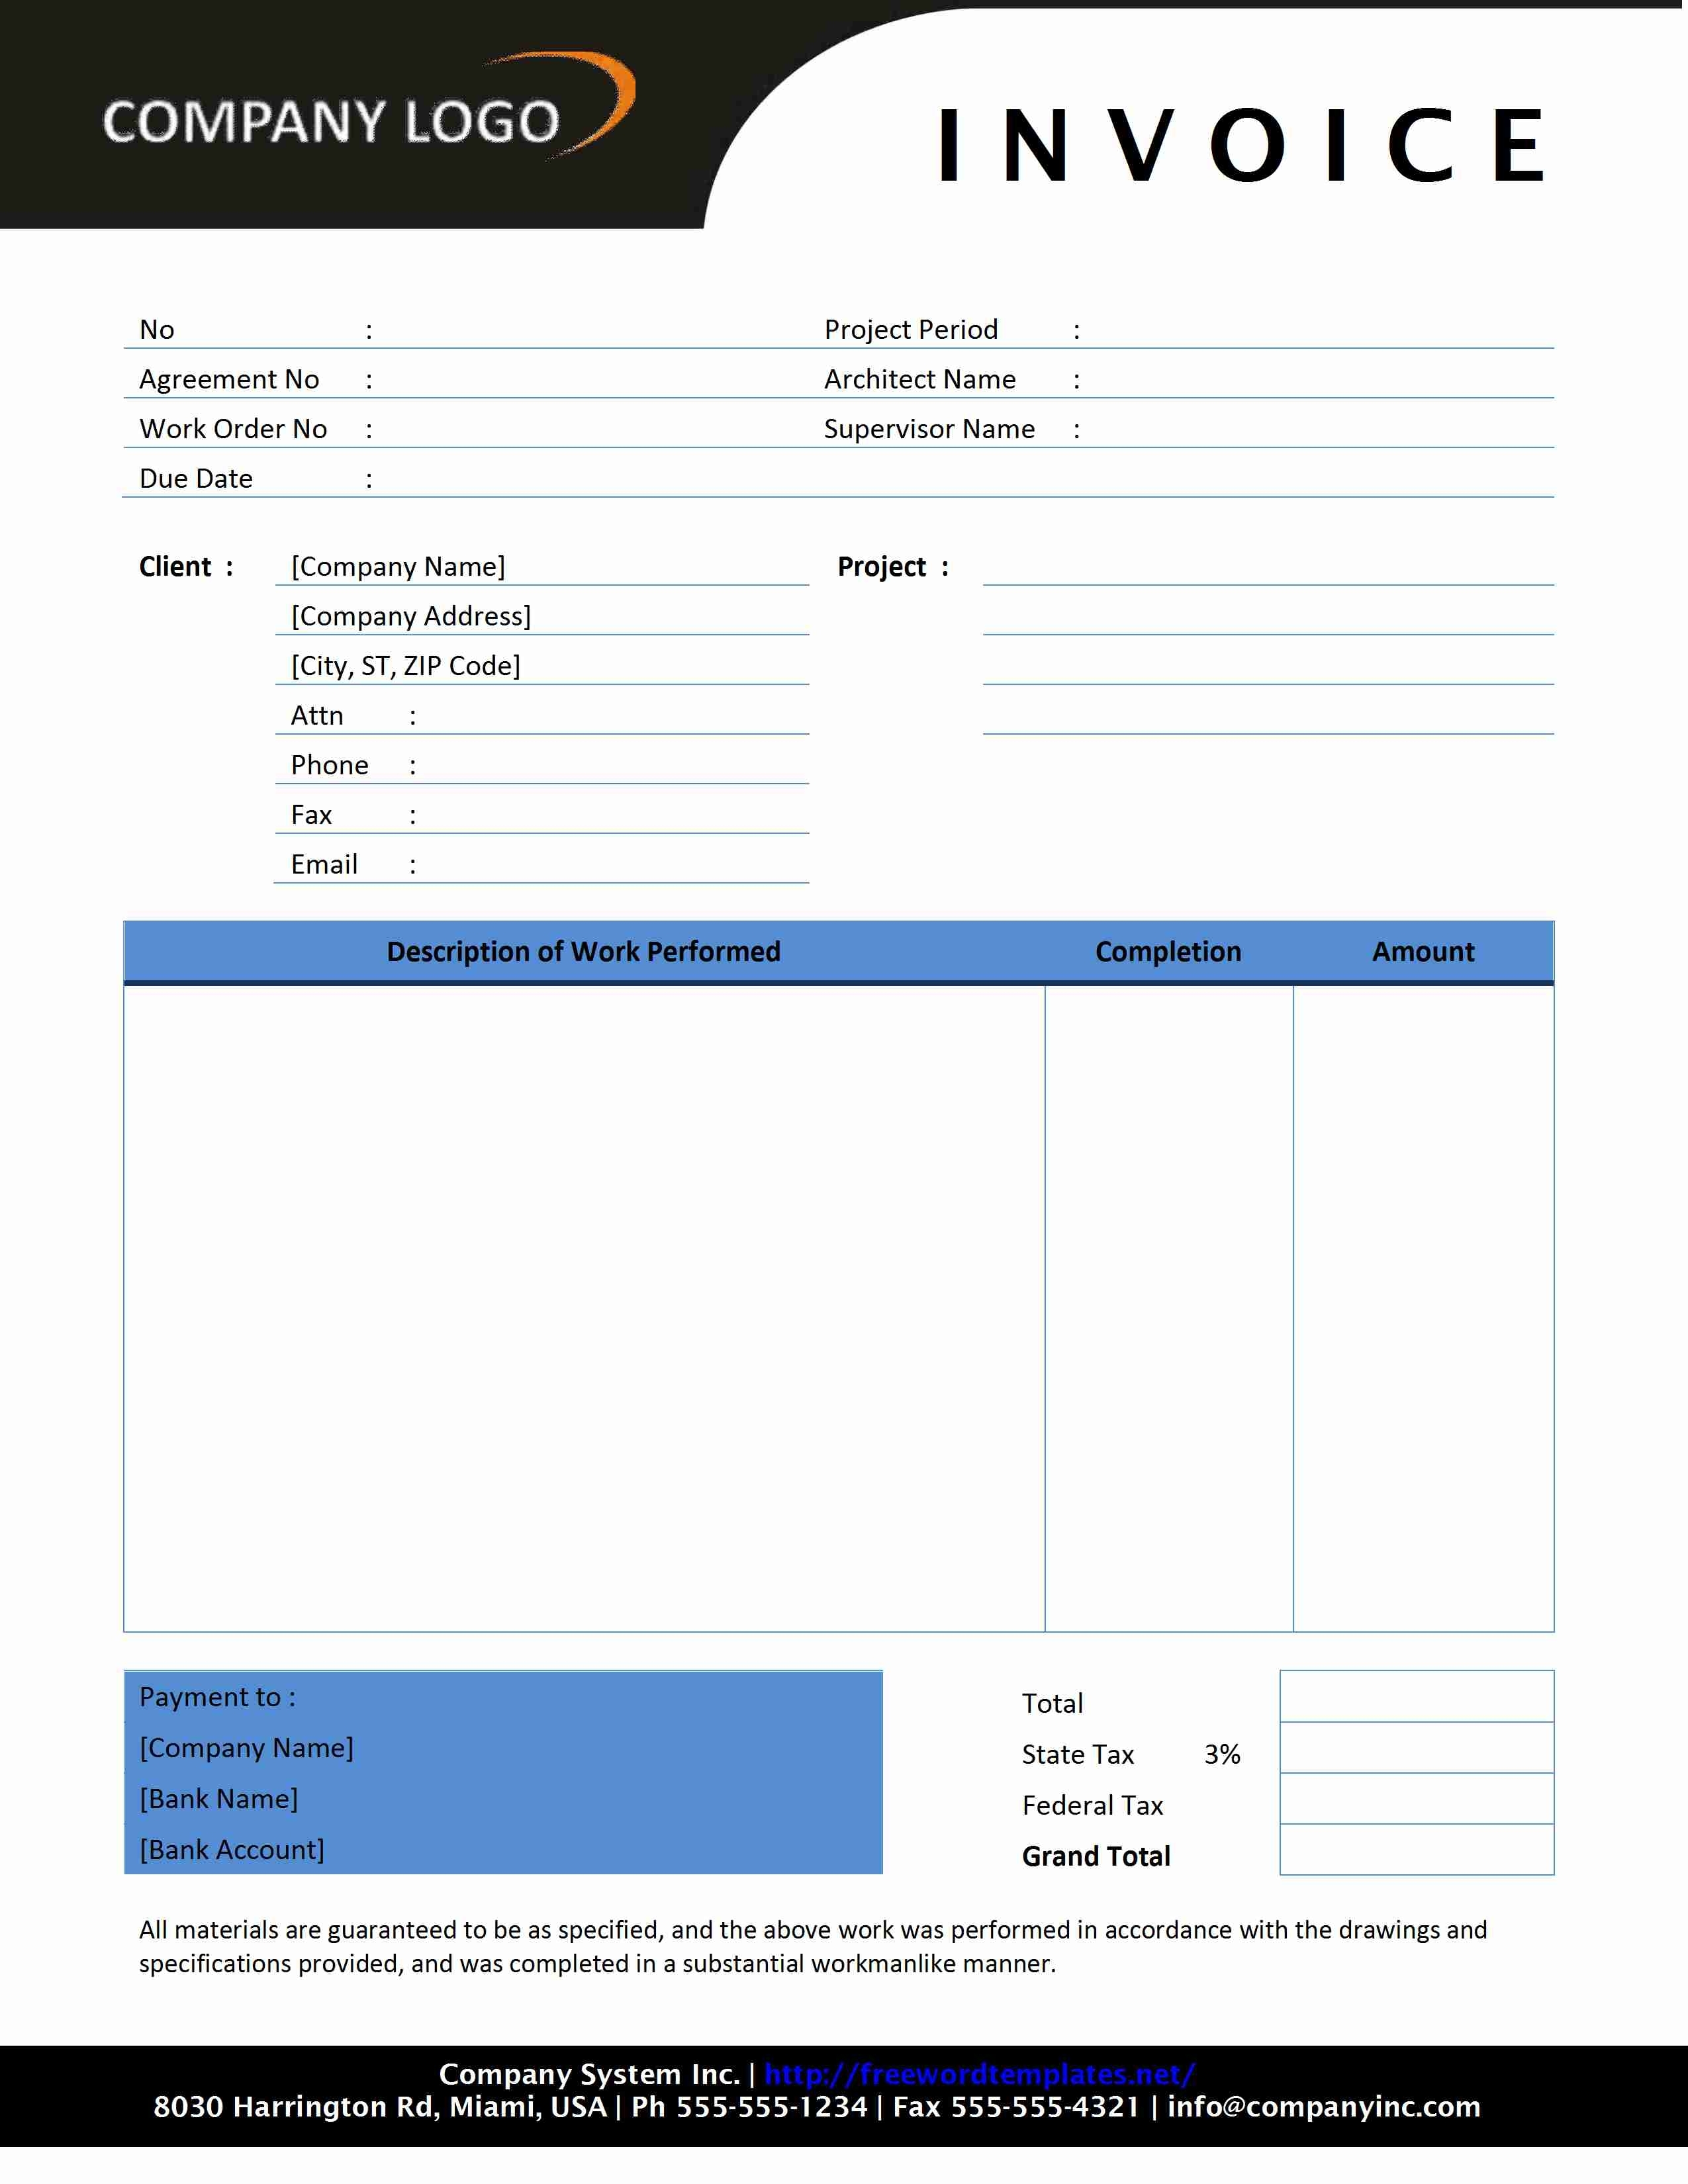 proforma invoice meaning pro forma invoice meaning invoice template free 2016 2550 X 3300